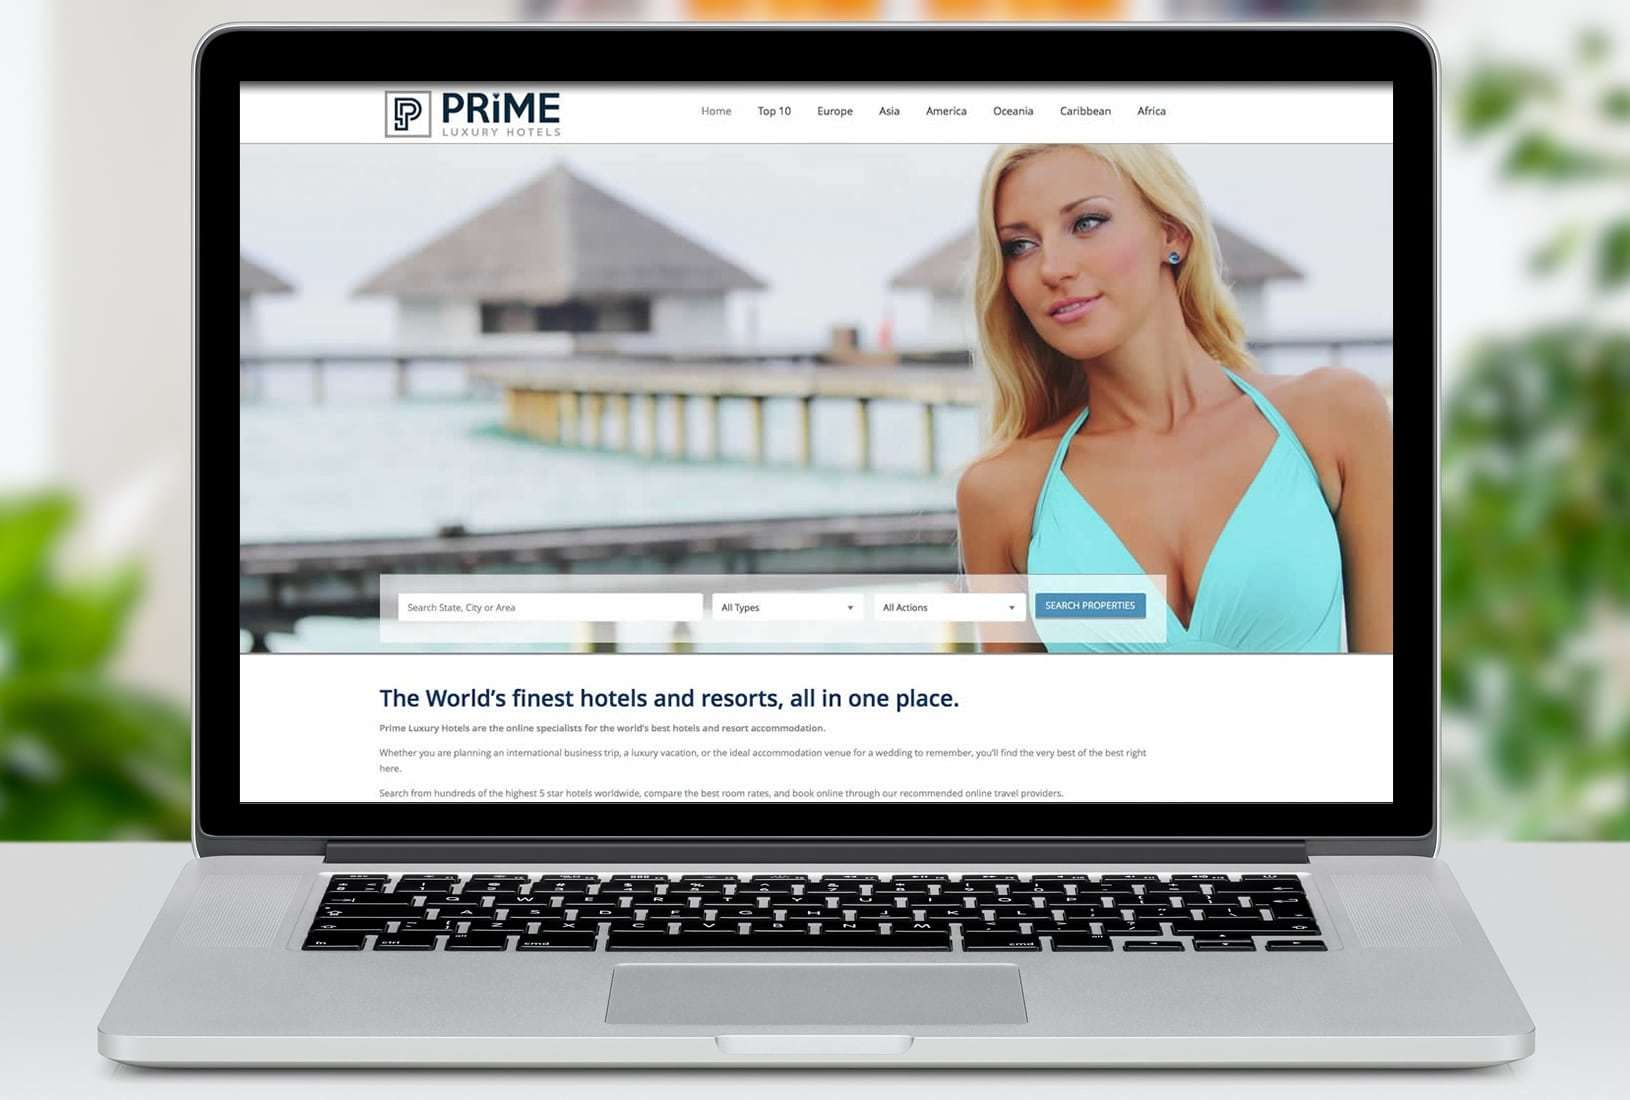 Prime Luxury Hotels Website Design for the luxury tourism industry